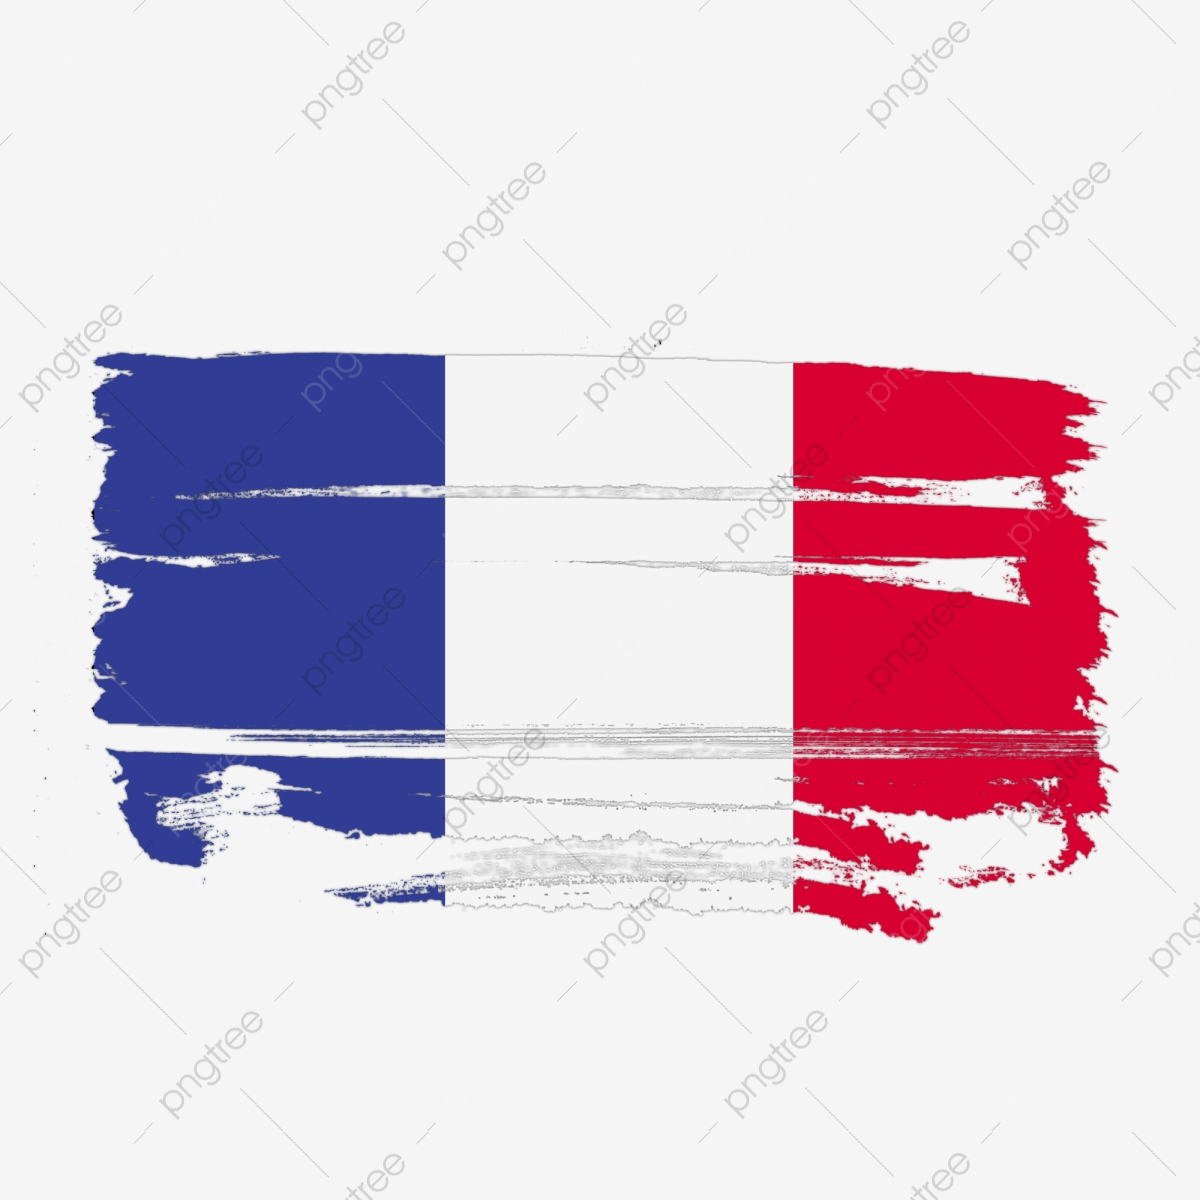 France Flag Transparent With Watercolor Paint Brush France France Flag France Flag Vector Png Transparent Clipart Image And Psd File For Free Download